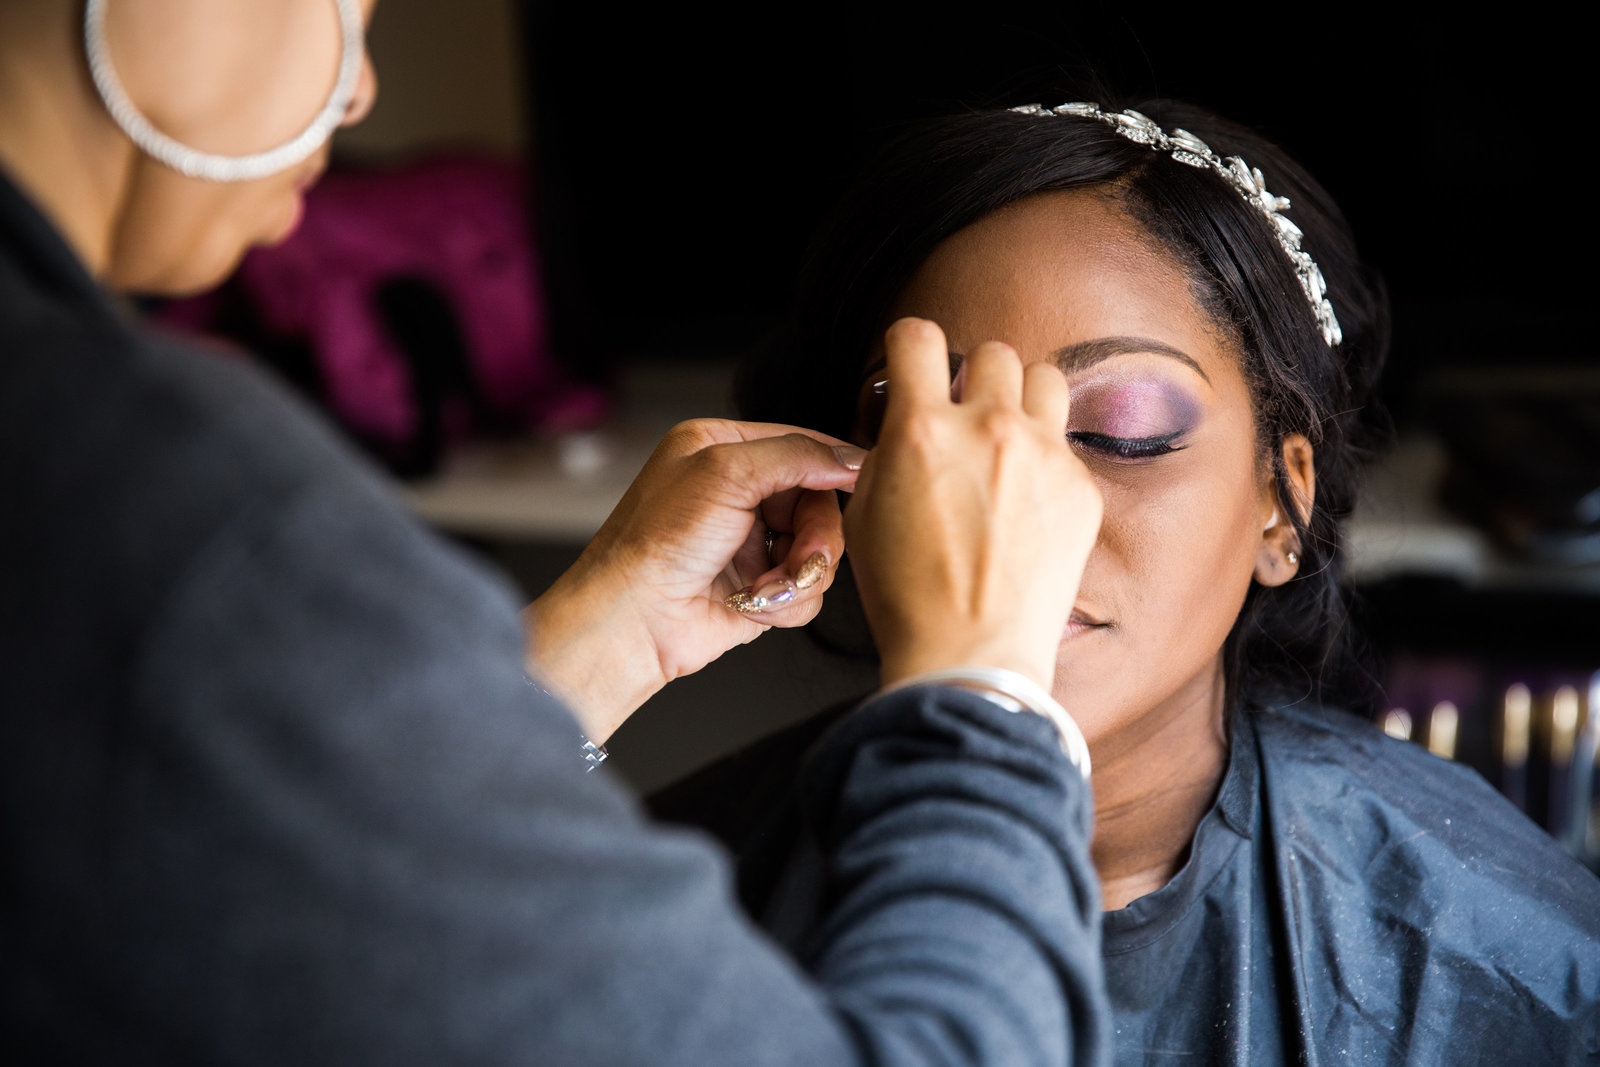 photos makeup by Tammi Toliver  Fashion Facez photo by Greg Davenport Photography